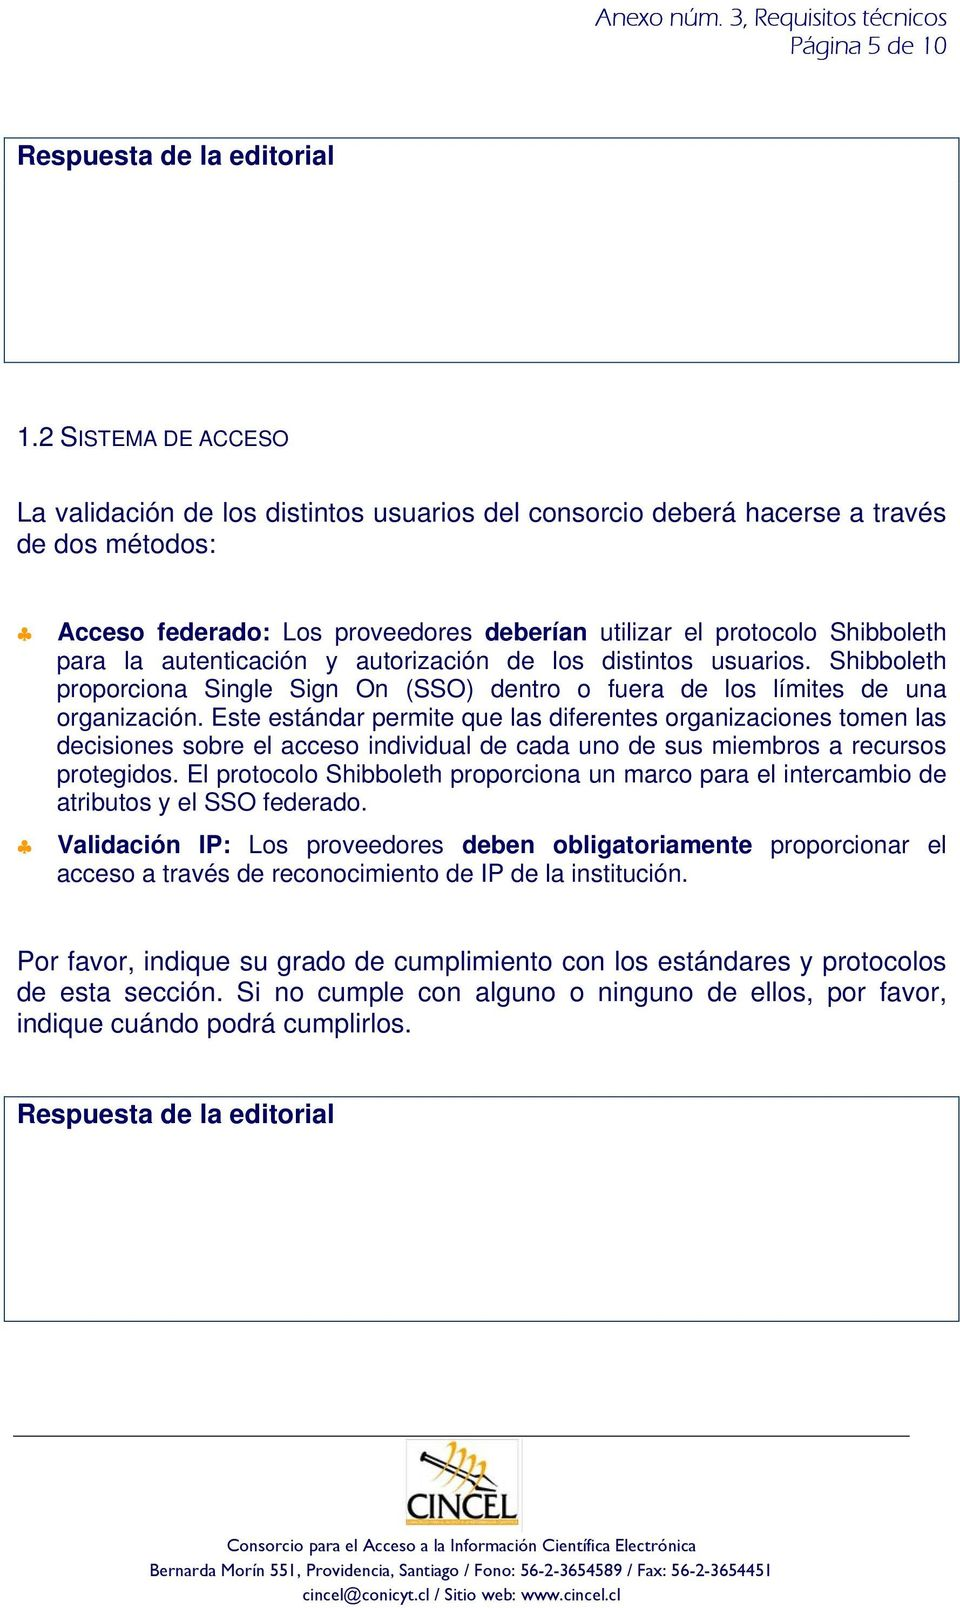 autenticación y autorización de los distintos usuarios. Shibboleth proporciona Single Sign On (SSO) dentro o fuera de los límites de una organización.